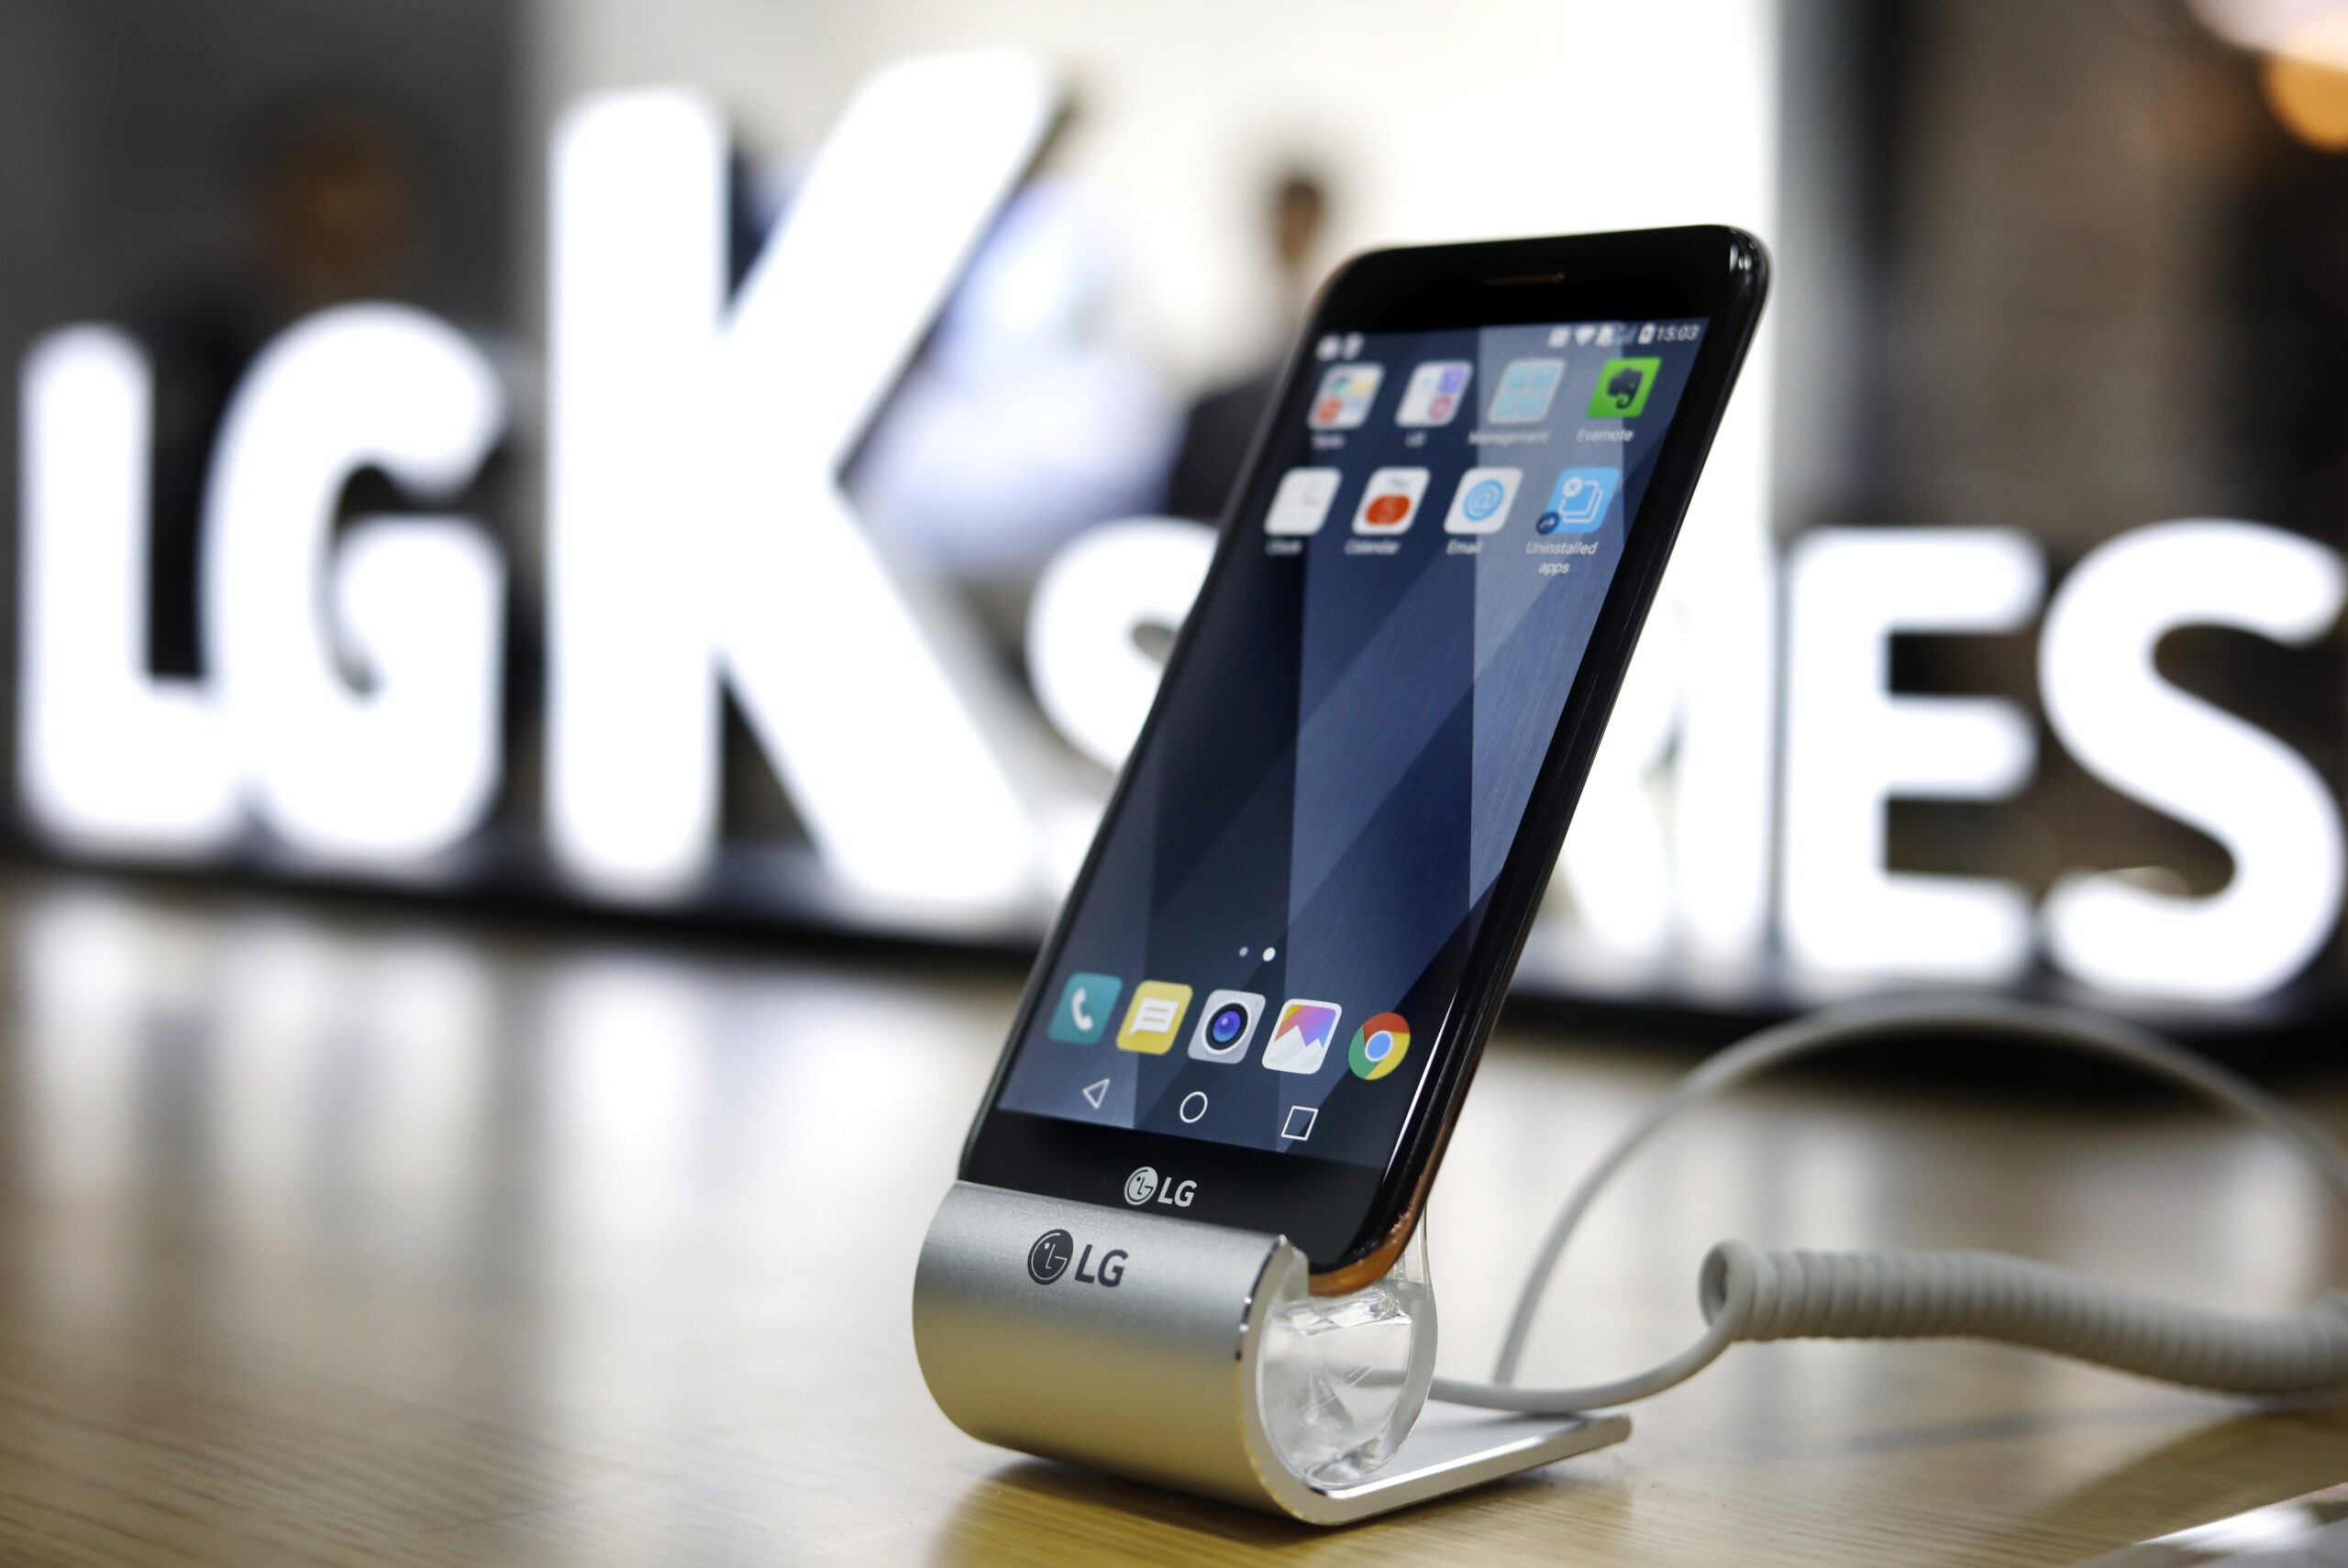 Close-up view of LG's K8 smartphone on display at the company's CES 2017 booth